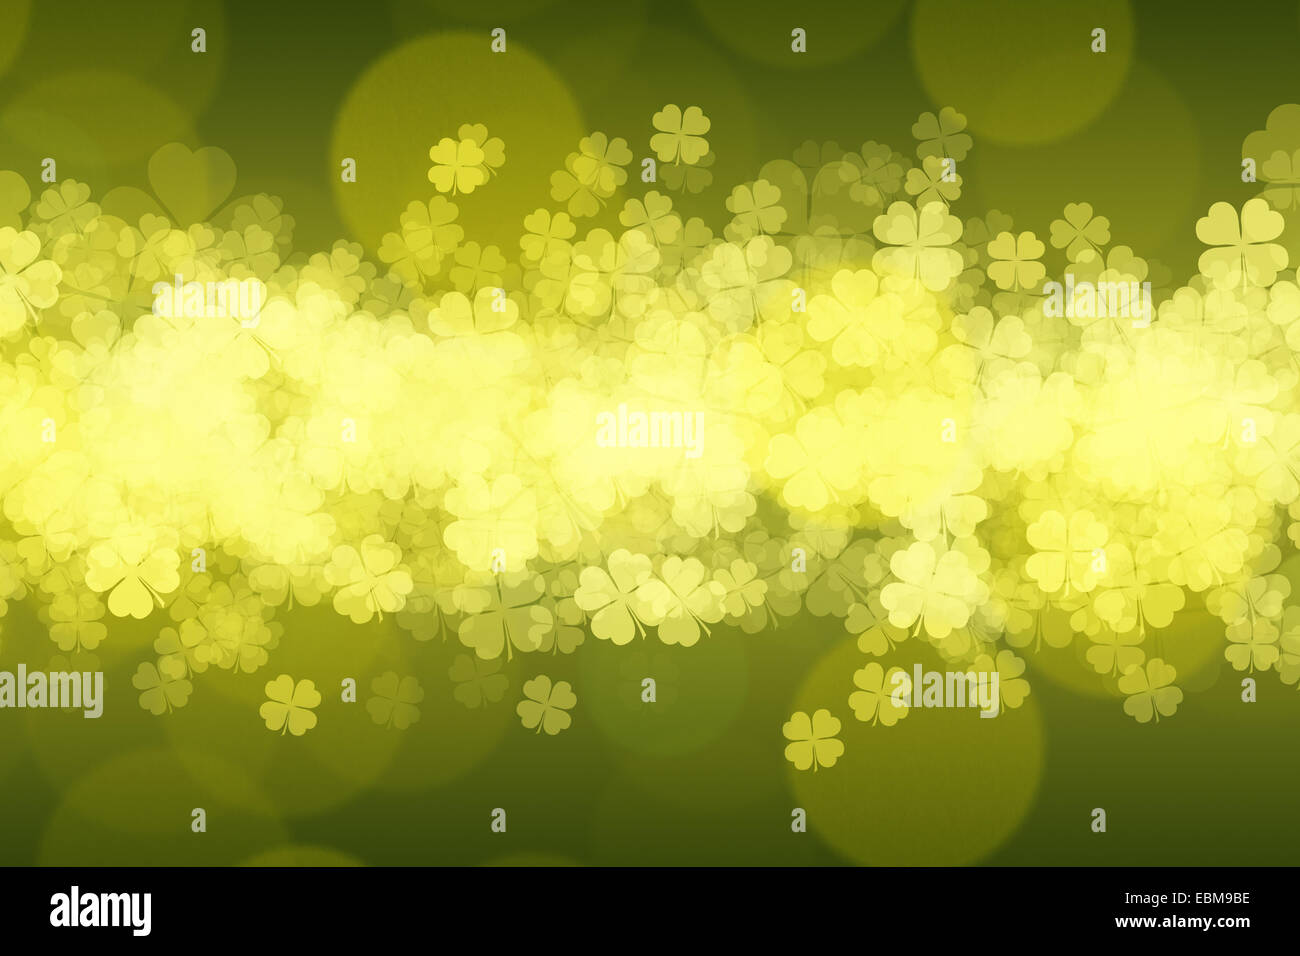 St. Patrick's day green grungy background. - Stock Image